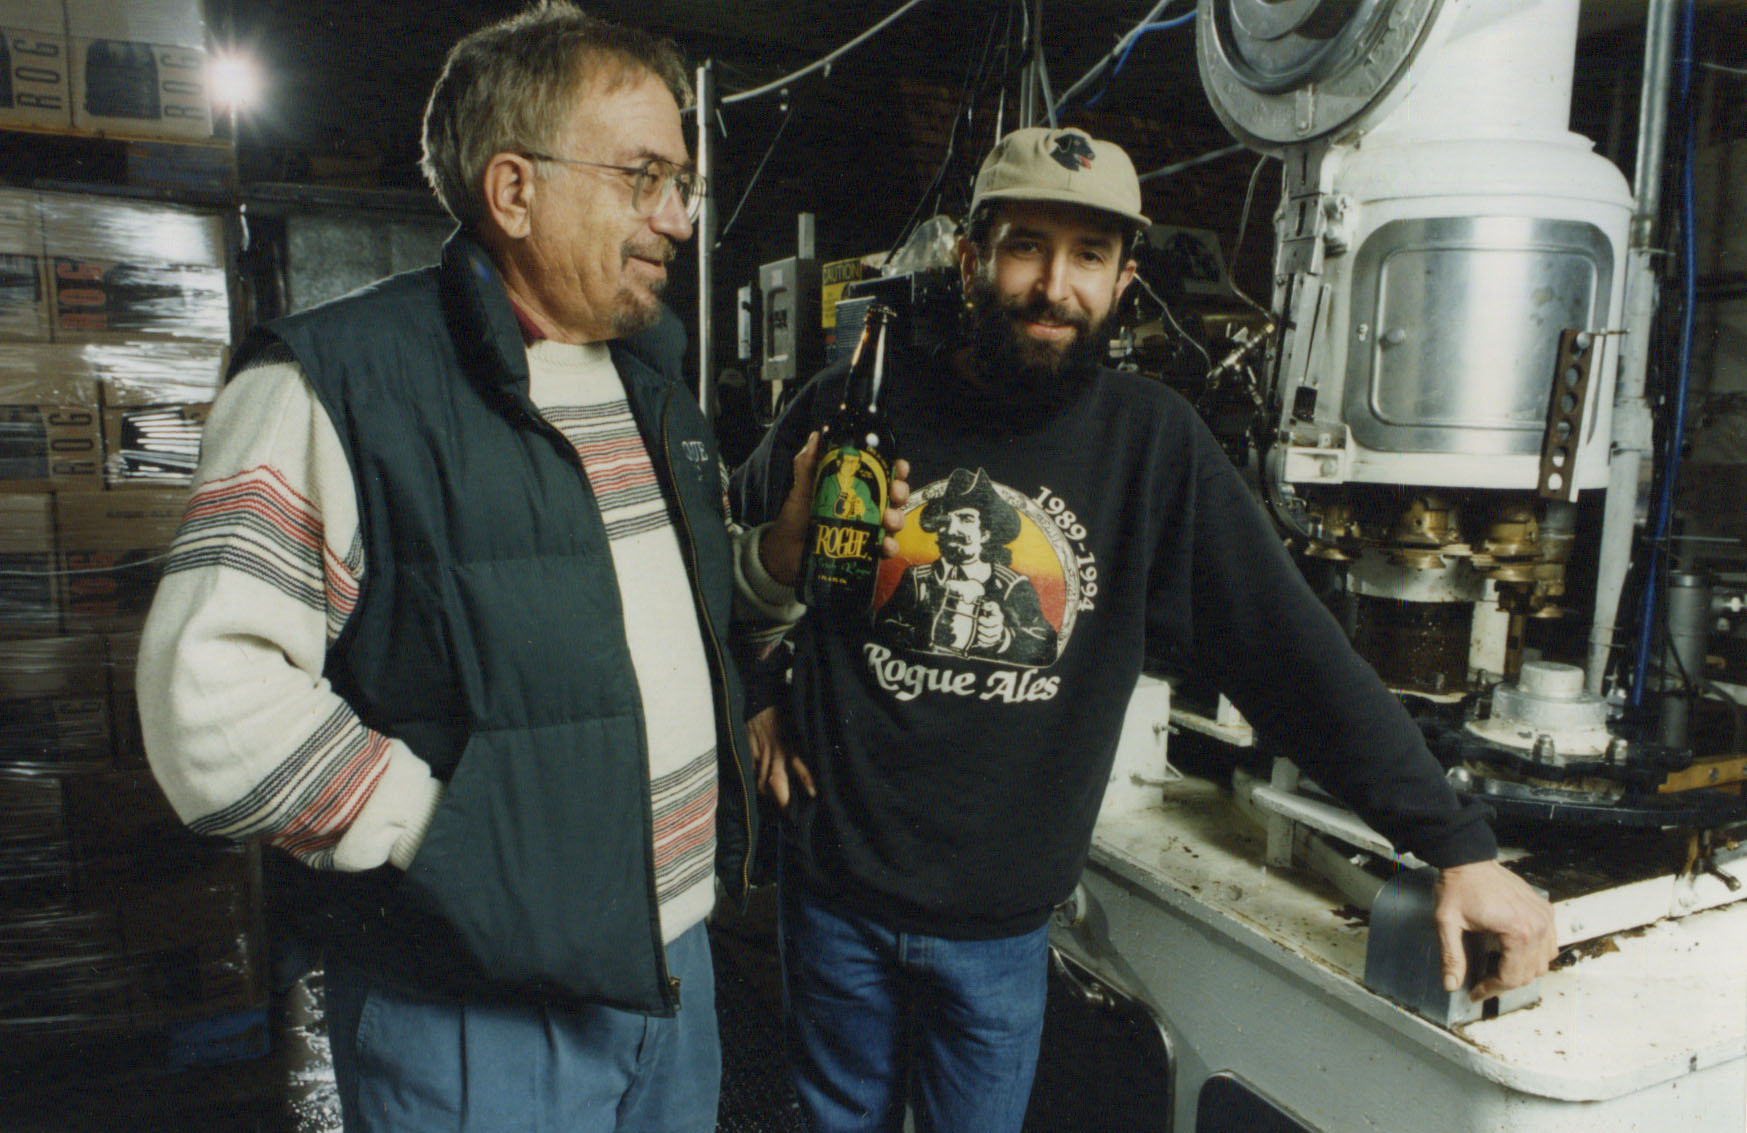 John Maier and Jack Joyce circa 1994. (image courtesy of Rogue Ales)